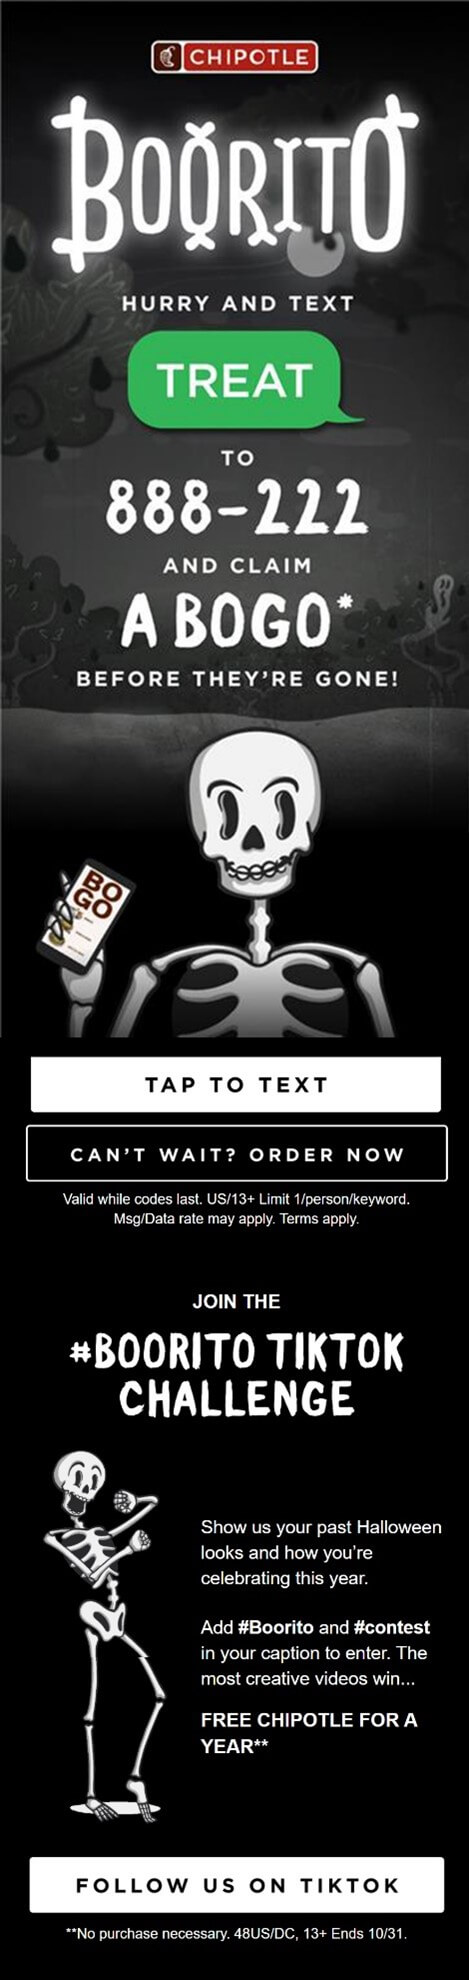 Creative Sample #1: Mobile version of email for Chipotle Boorito digital campaign